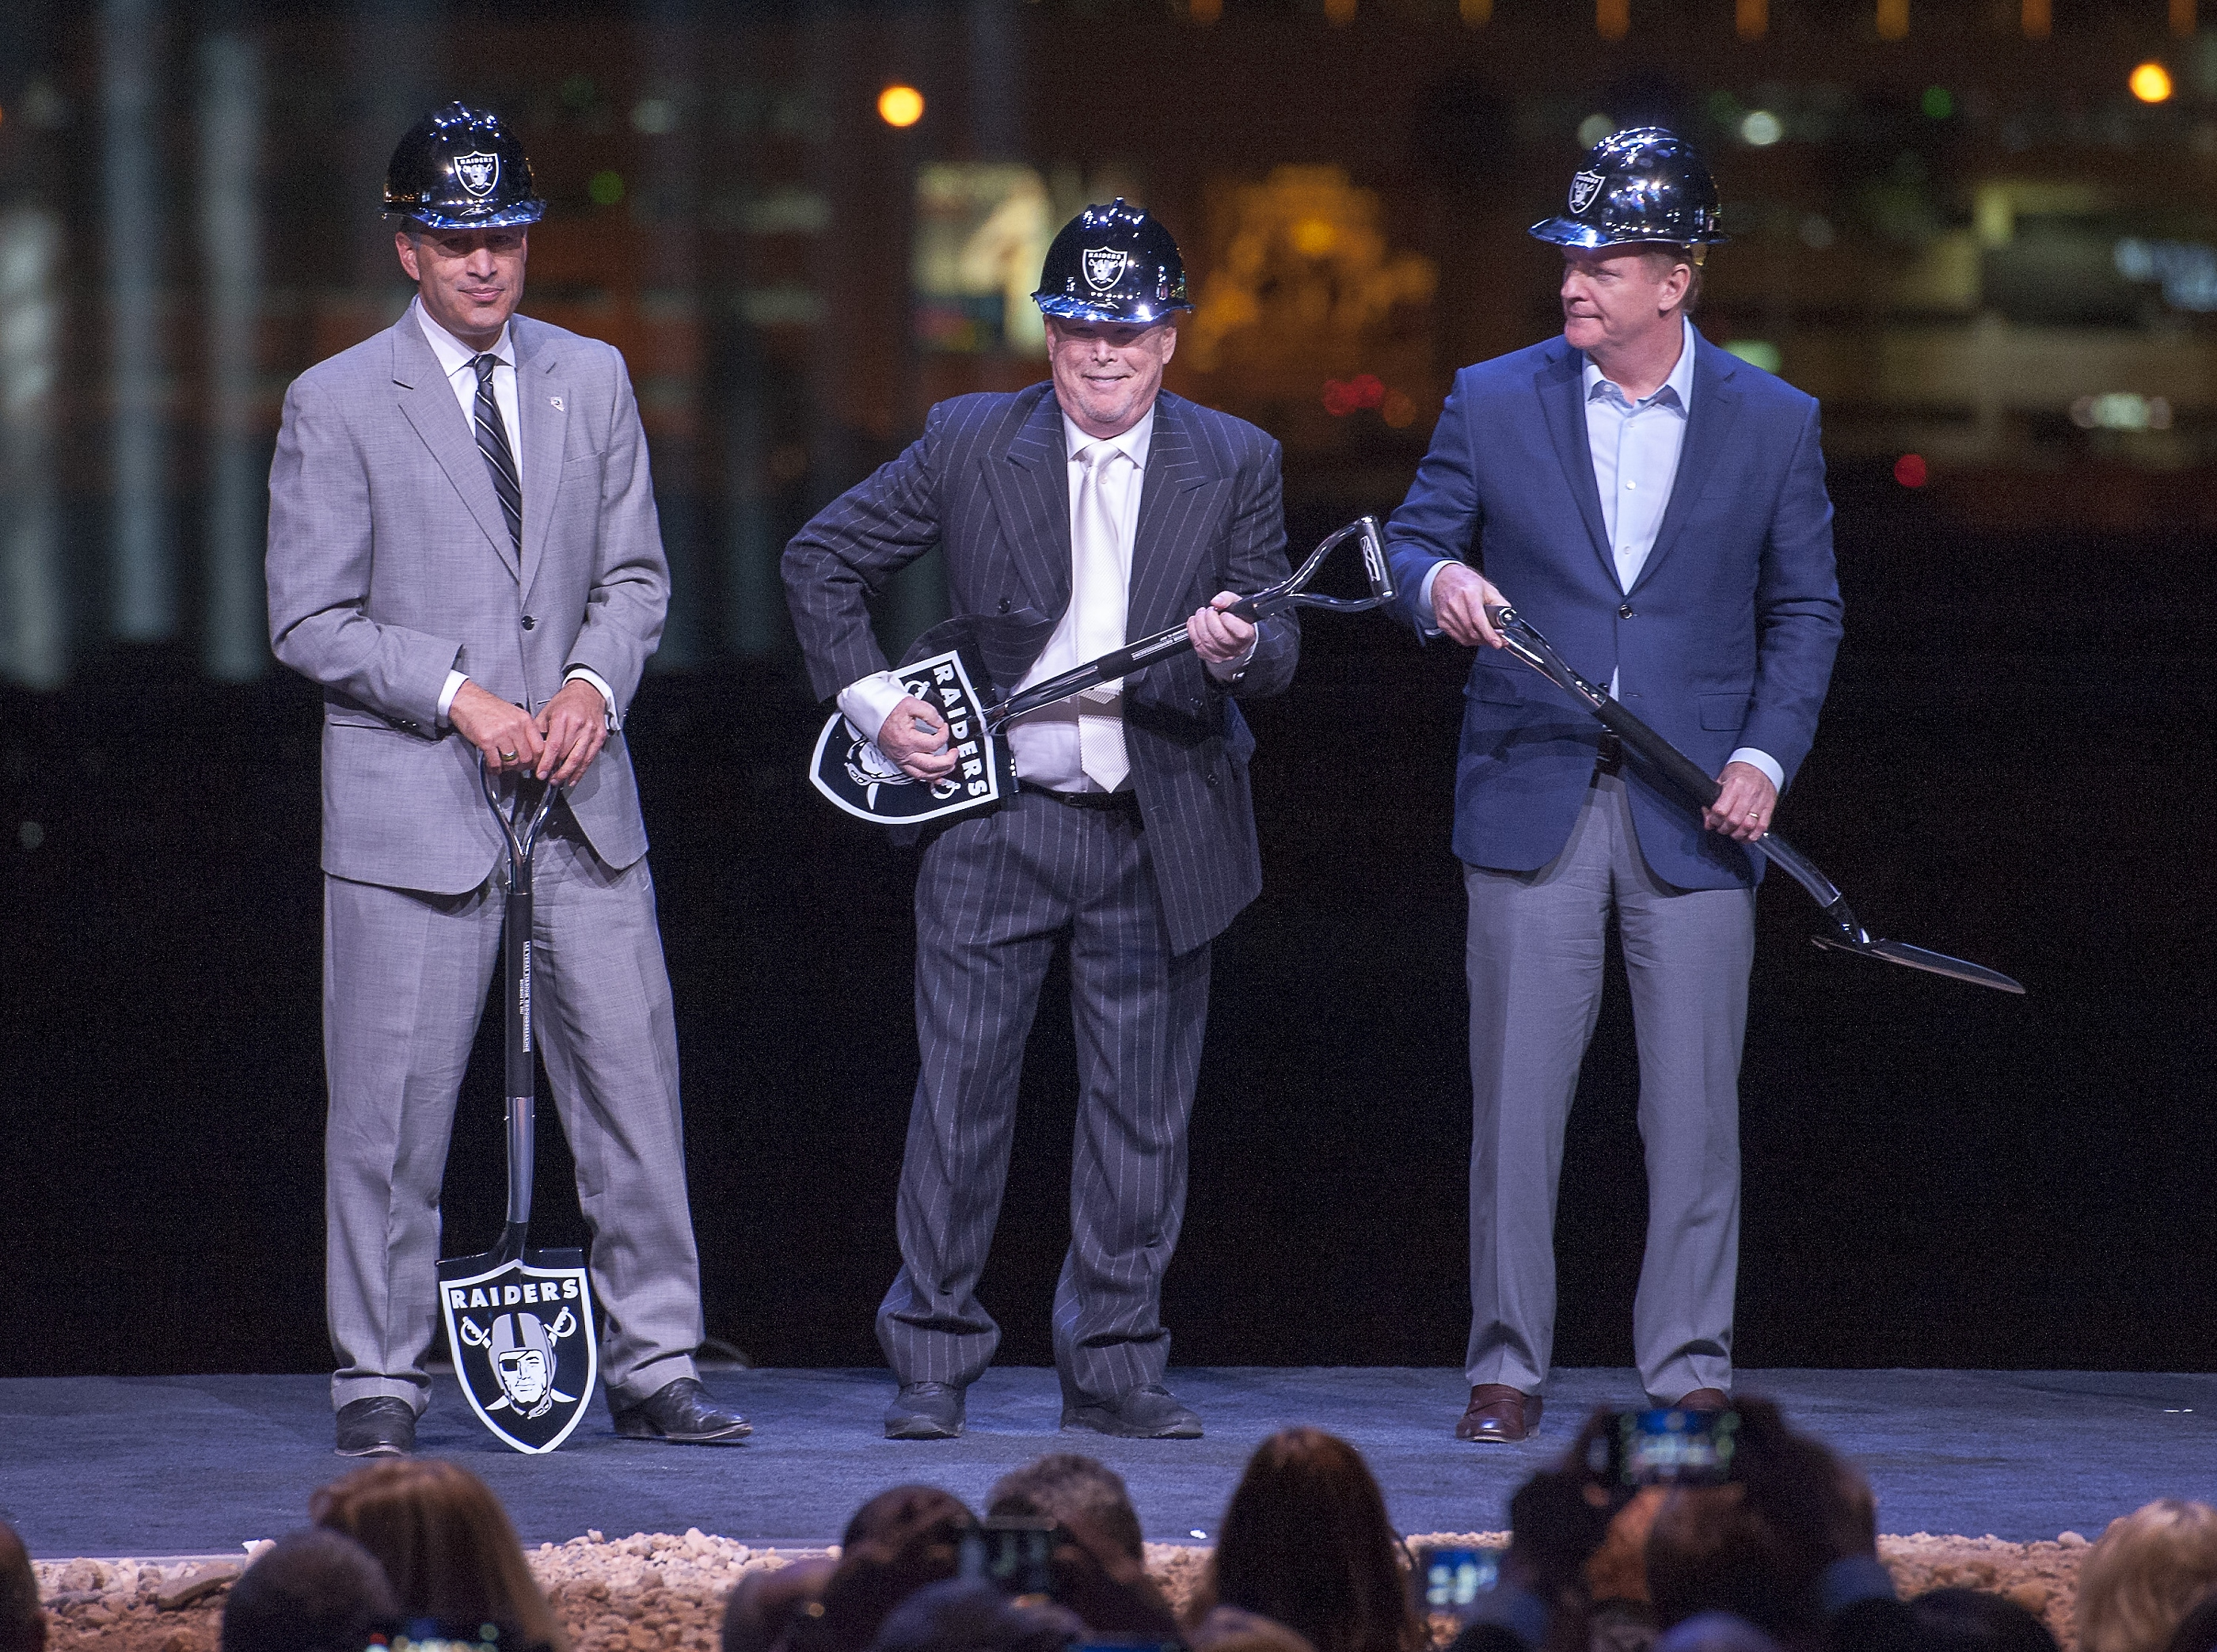 Oakland Raiders owner Mark Davis, center, clowns with his shovel along with Nevada Governor Brian Sandoval, left, and NFL Commissioner Roger Goodell as they prepare to turn the first earth at the groundbreaking ceremony for the Raiders Las Vegas Stadium at the Polaris Avenue site in Las Vegas on Monday, Nov. 13, 2017. CREDIT: Mark Damon/Las Vegas News Bureau